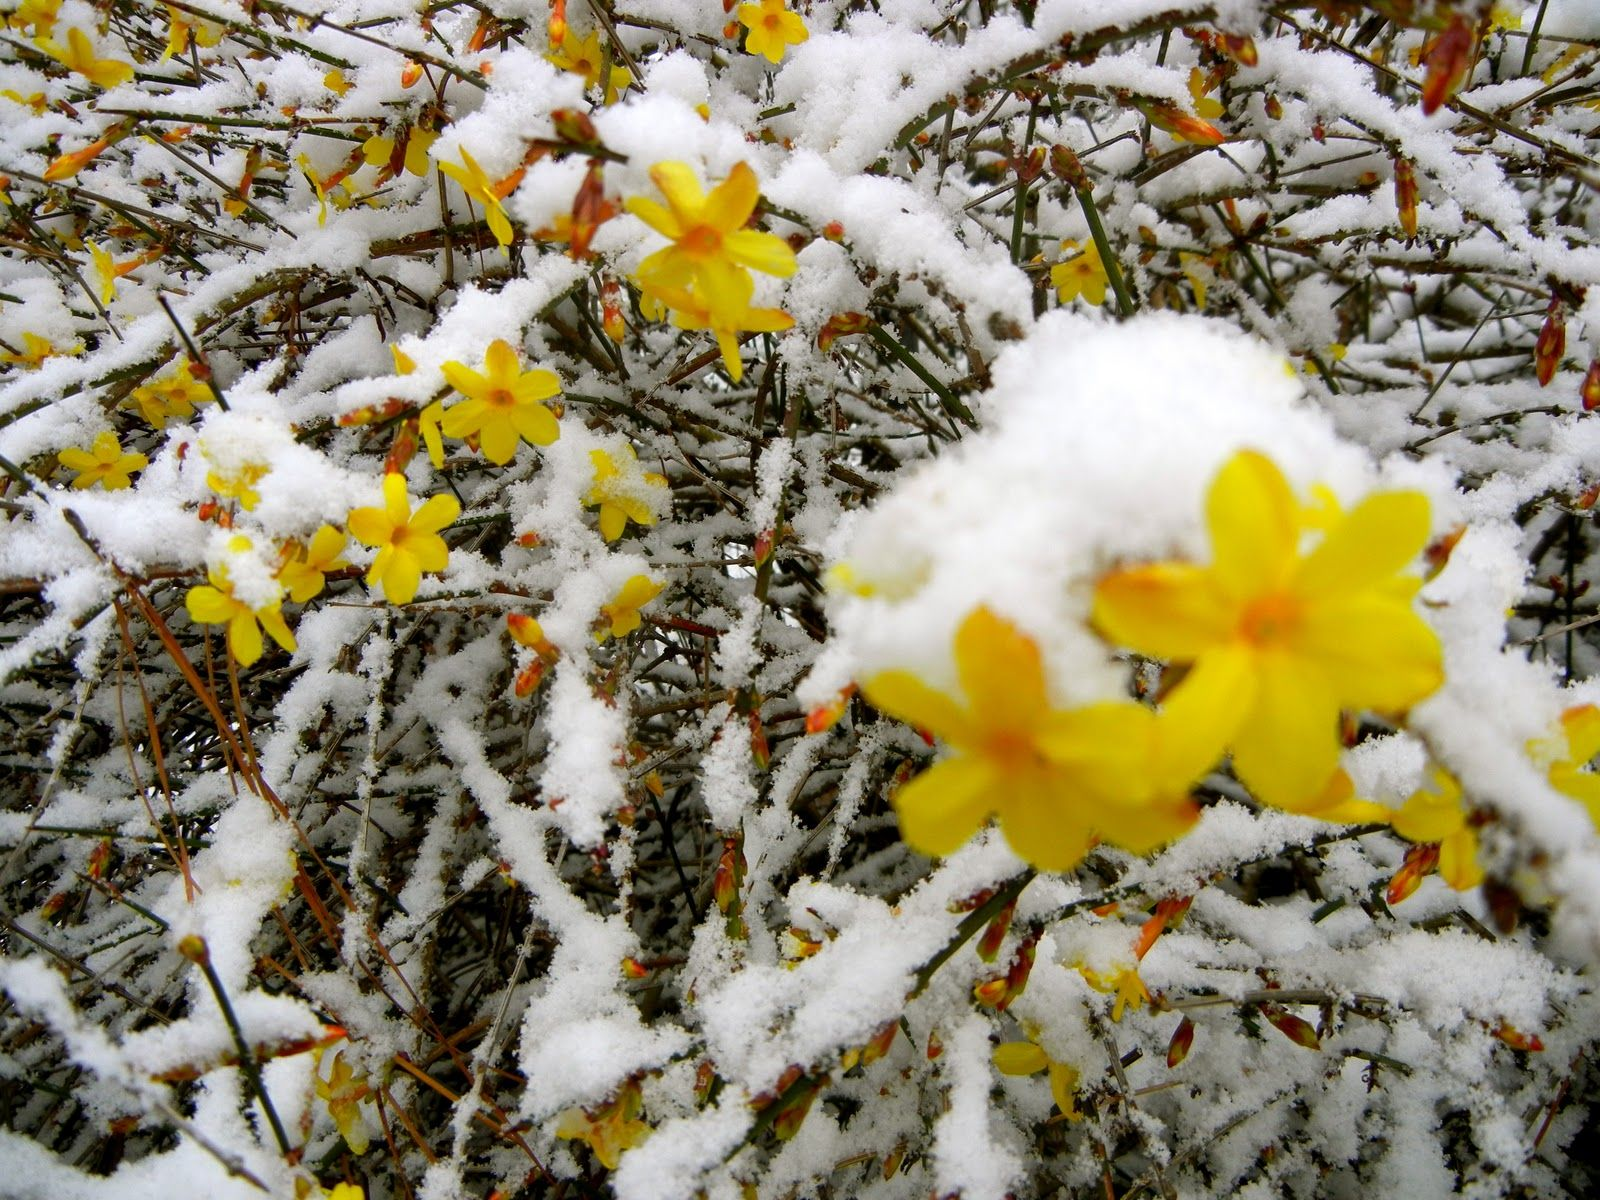 winter jasmine jasminum nudiflorum yellow flowers covered in snow zone 6 9 climbing. Black Bedroom Furniture Sets. Home Design Ideas